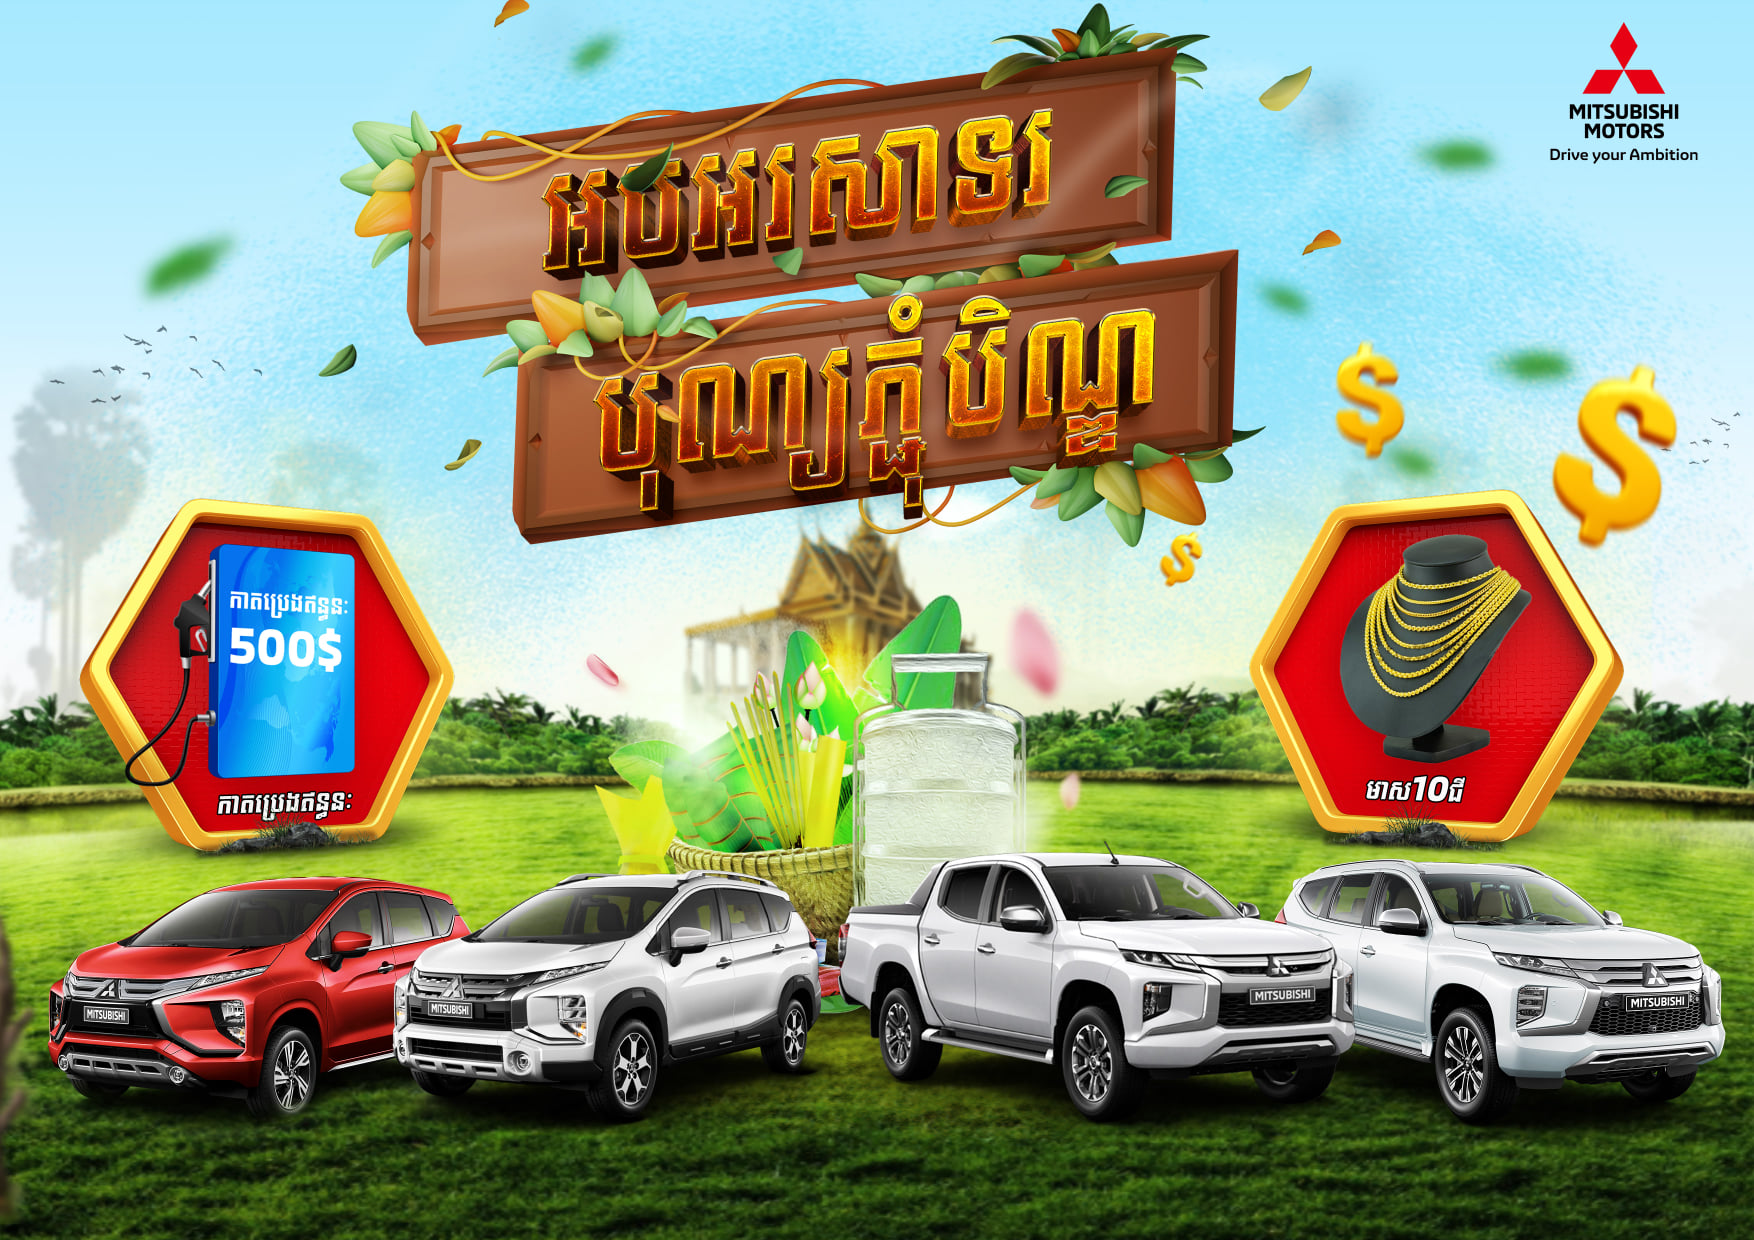 Pchum Ben Special Promotion from Mitsubishi